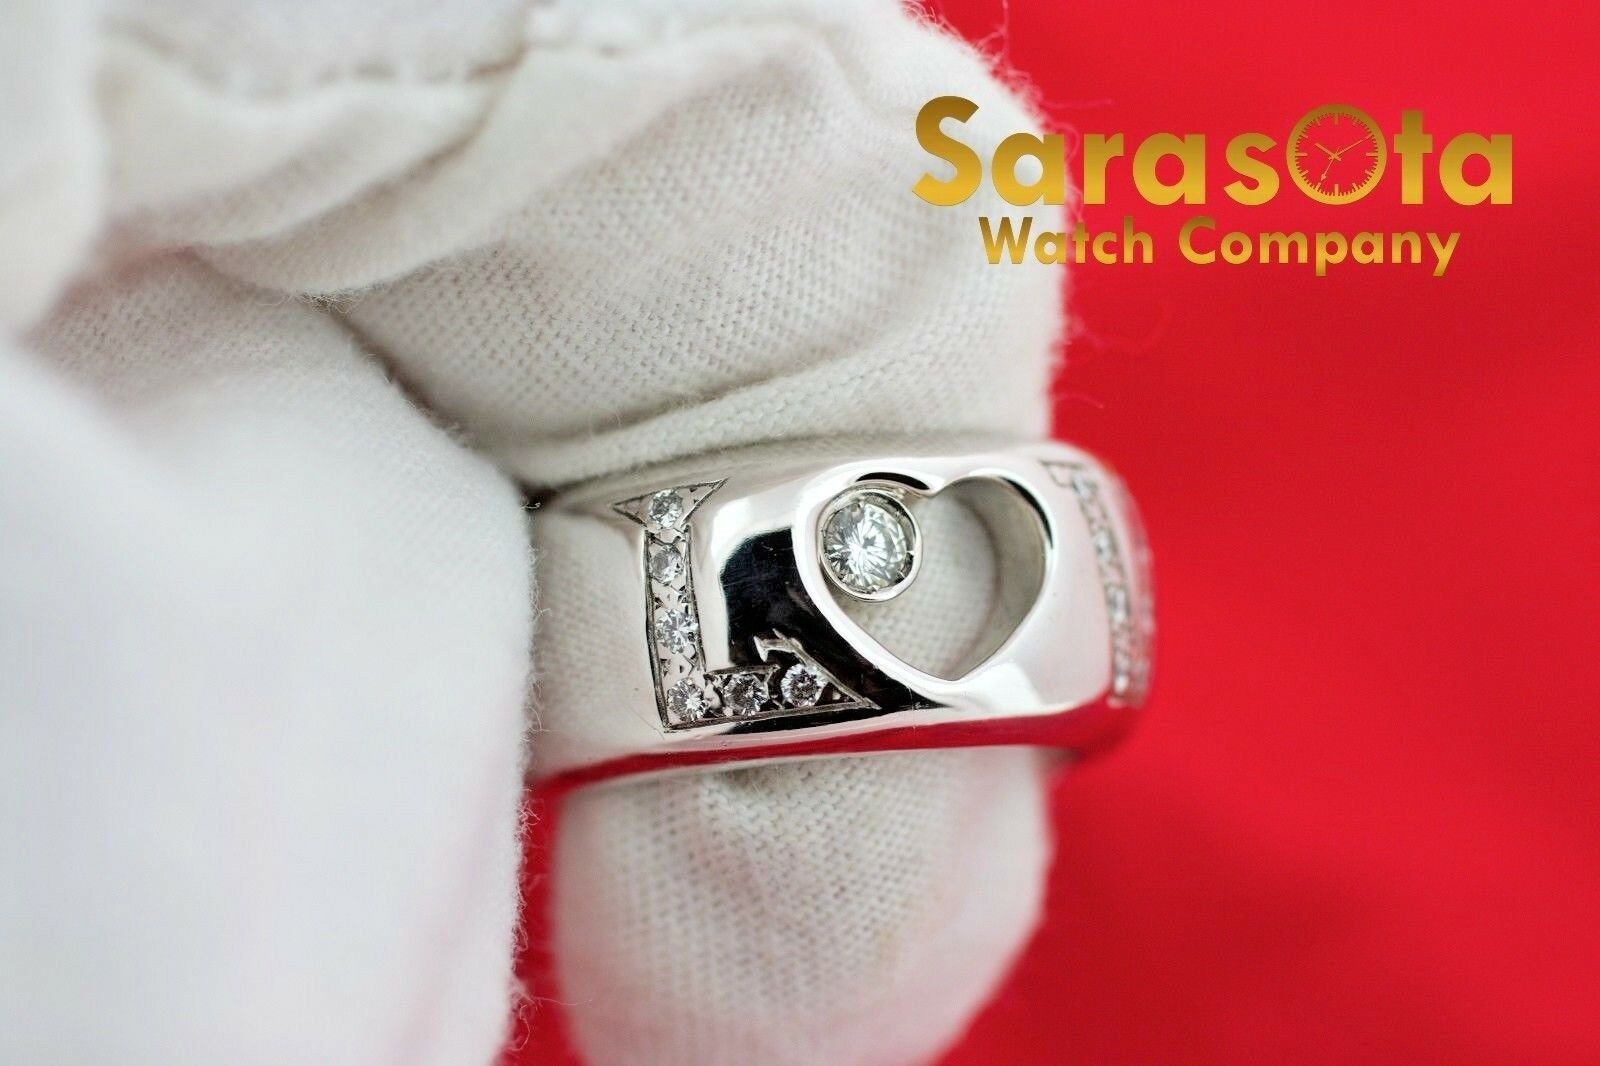 14K White Gold 030Ct HSI1 Diamond LOVE 11mm Wide Band Womens Ring Size 8 122030768416 4